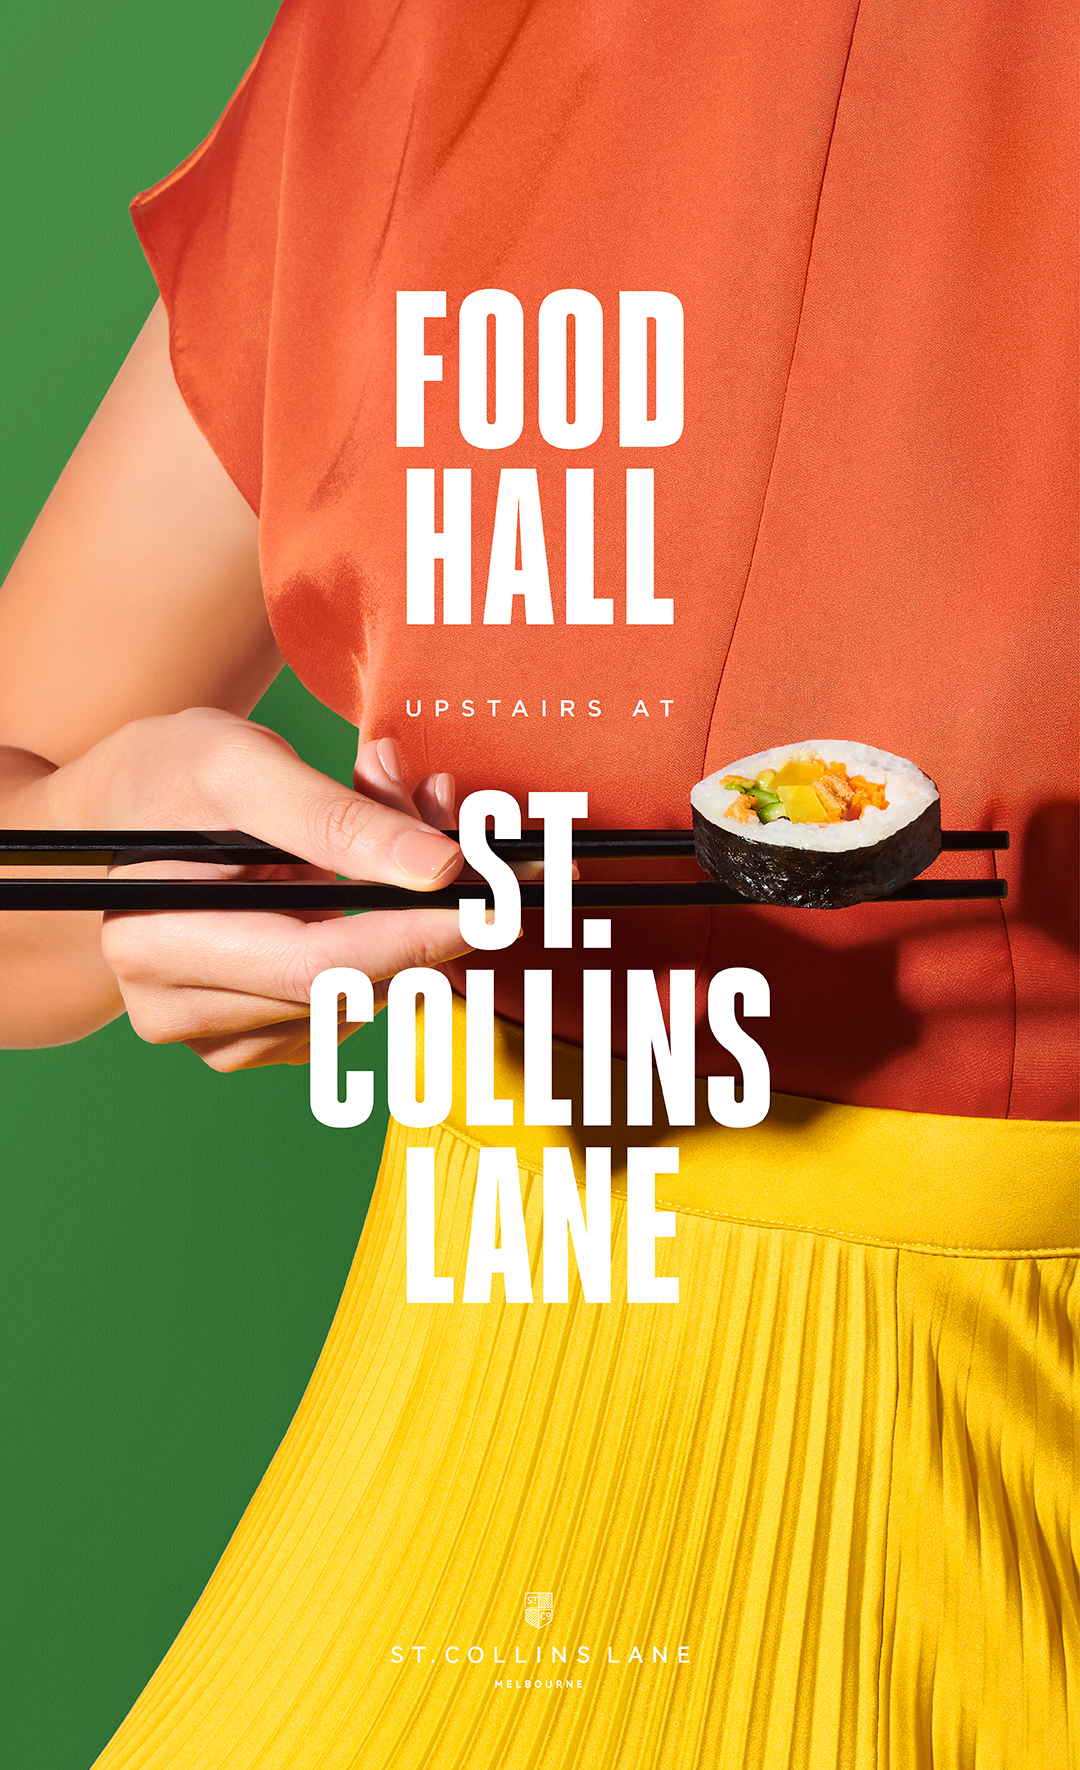 SCO3466 - St Collins Lane Food Hall - Digital Screens - 1770x1080 - 02 - FA.jpg